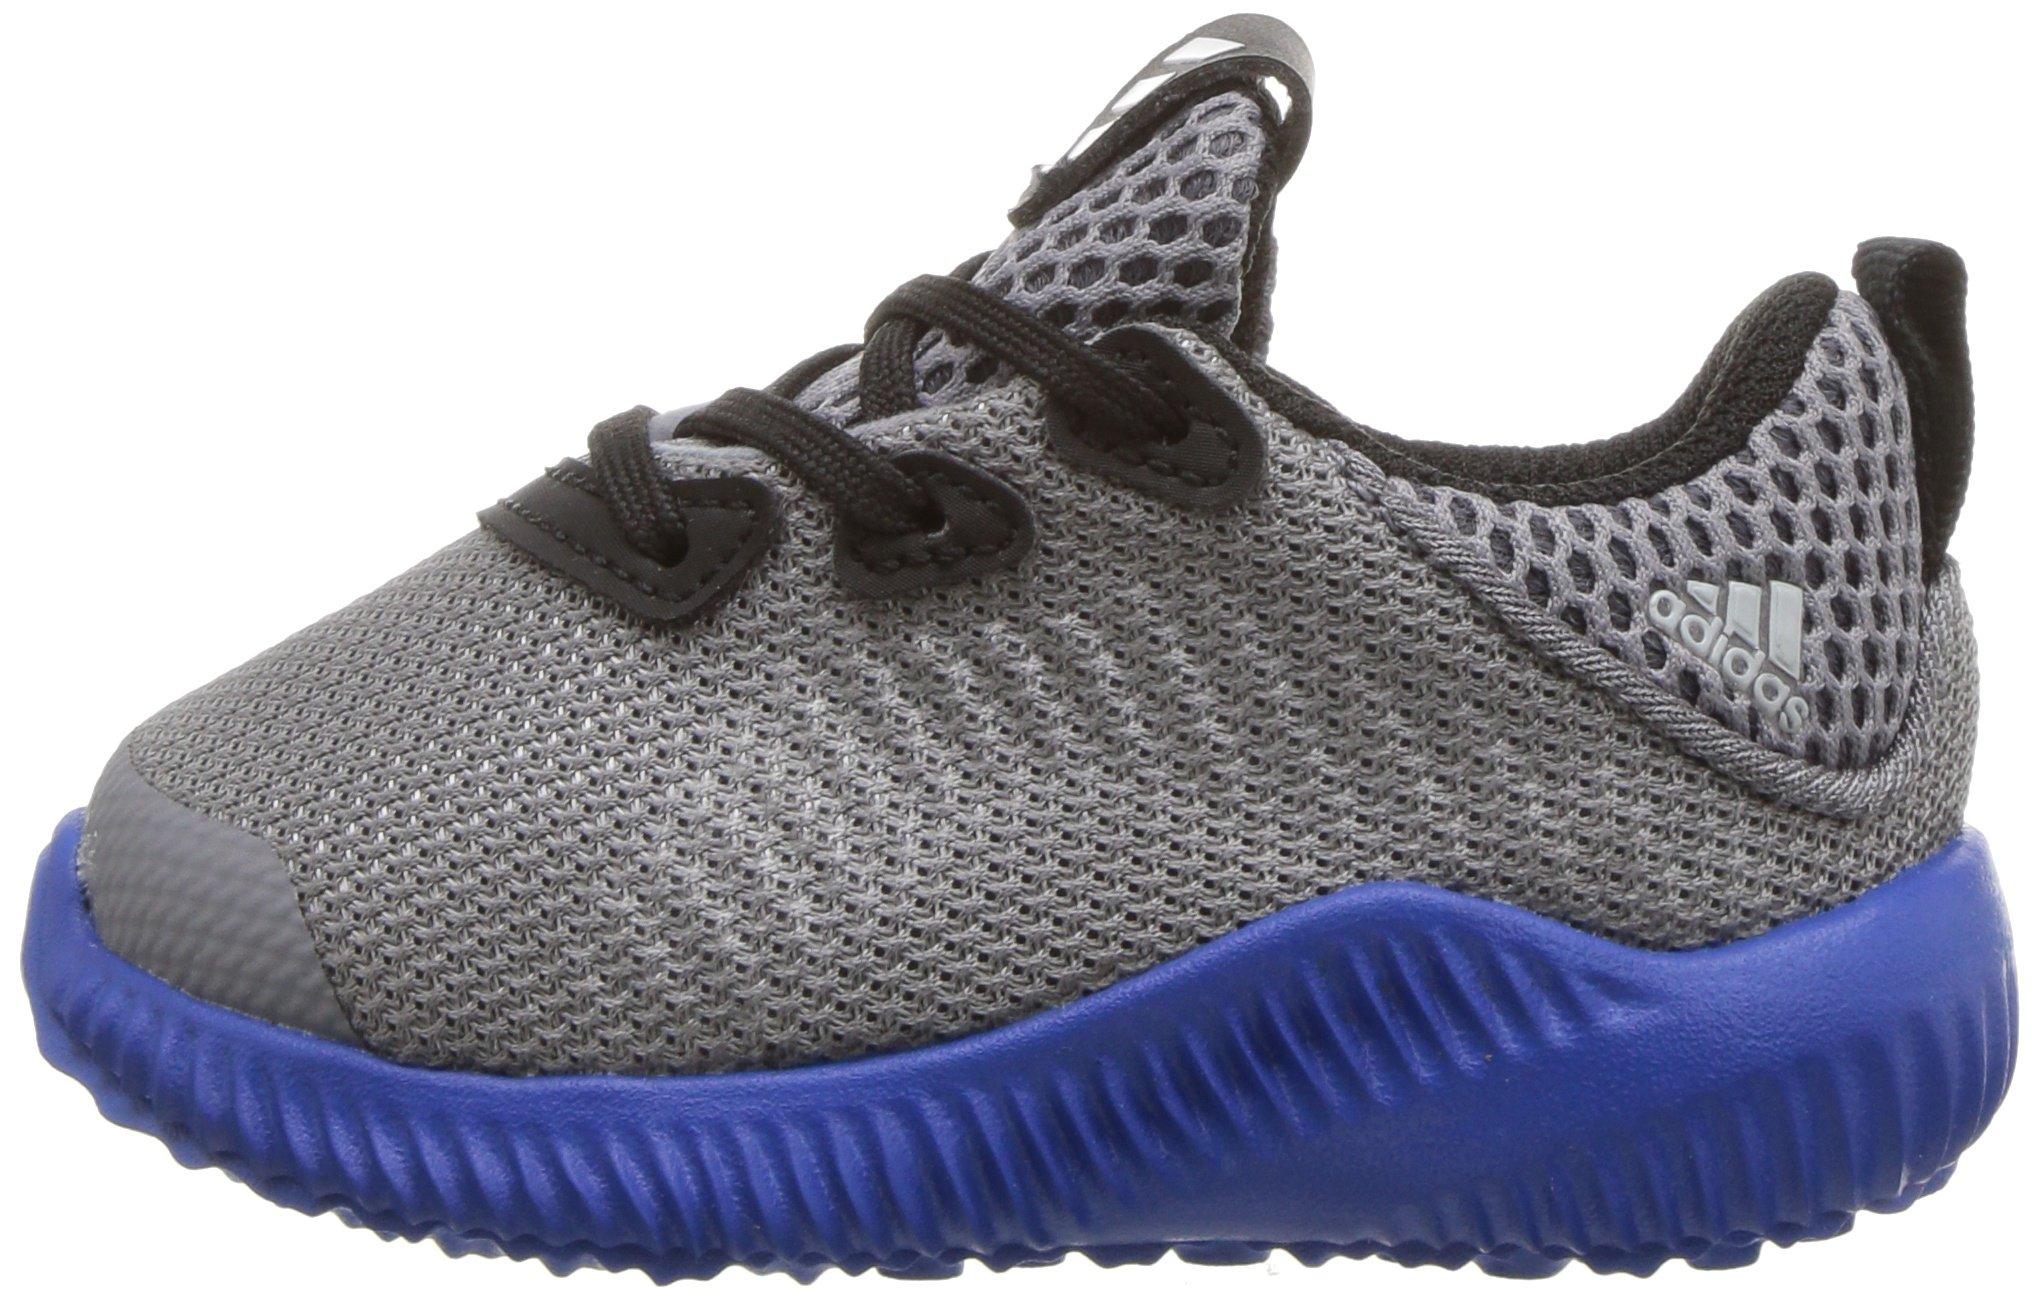 adidas Kids' Alphabounce Sneaker, Grey/Light Onix/Satellite, 7 M US Toddler by adidas (Image #5)